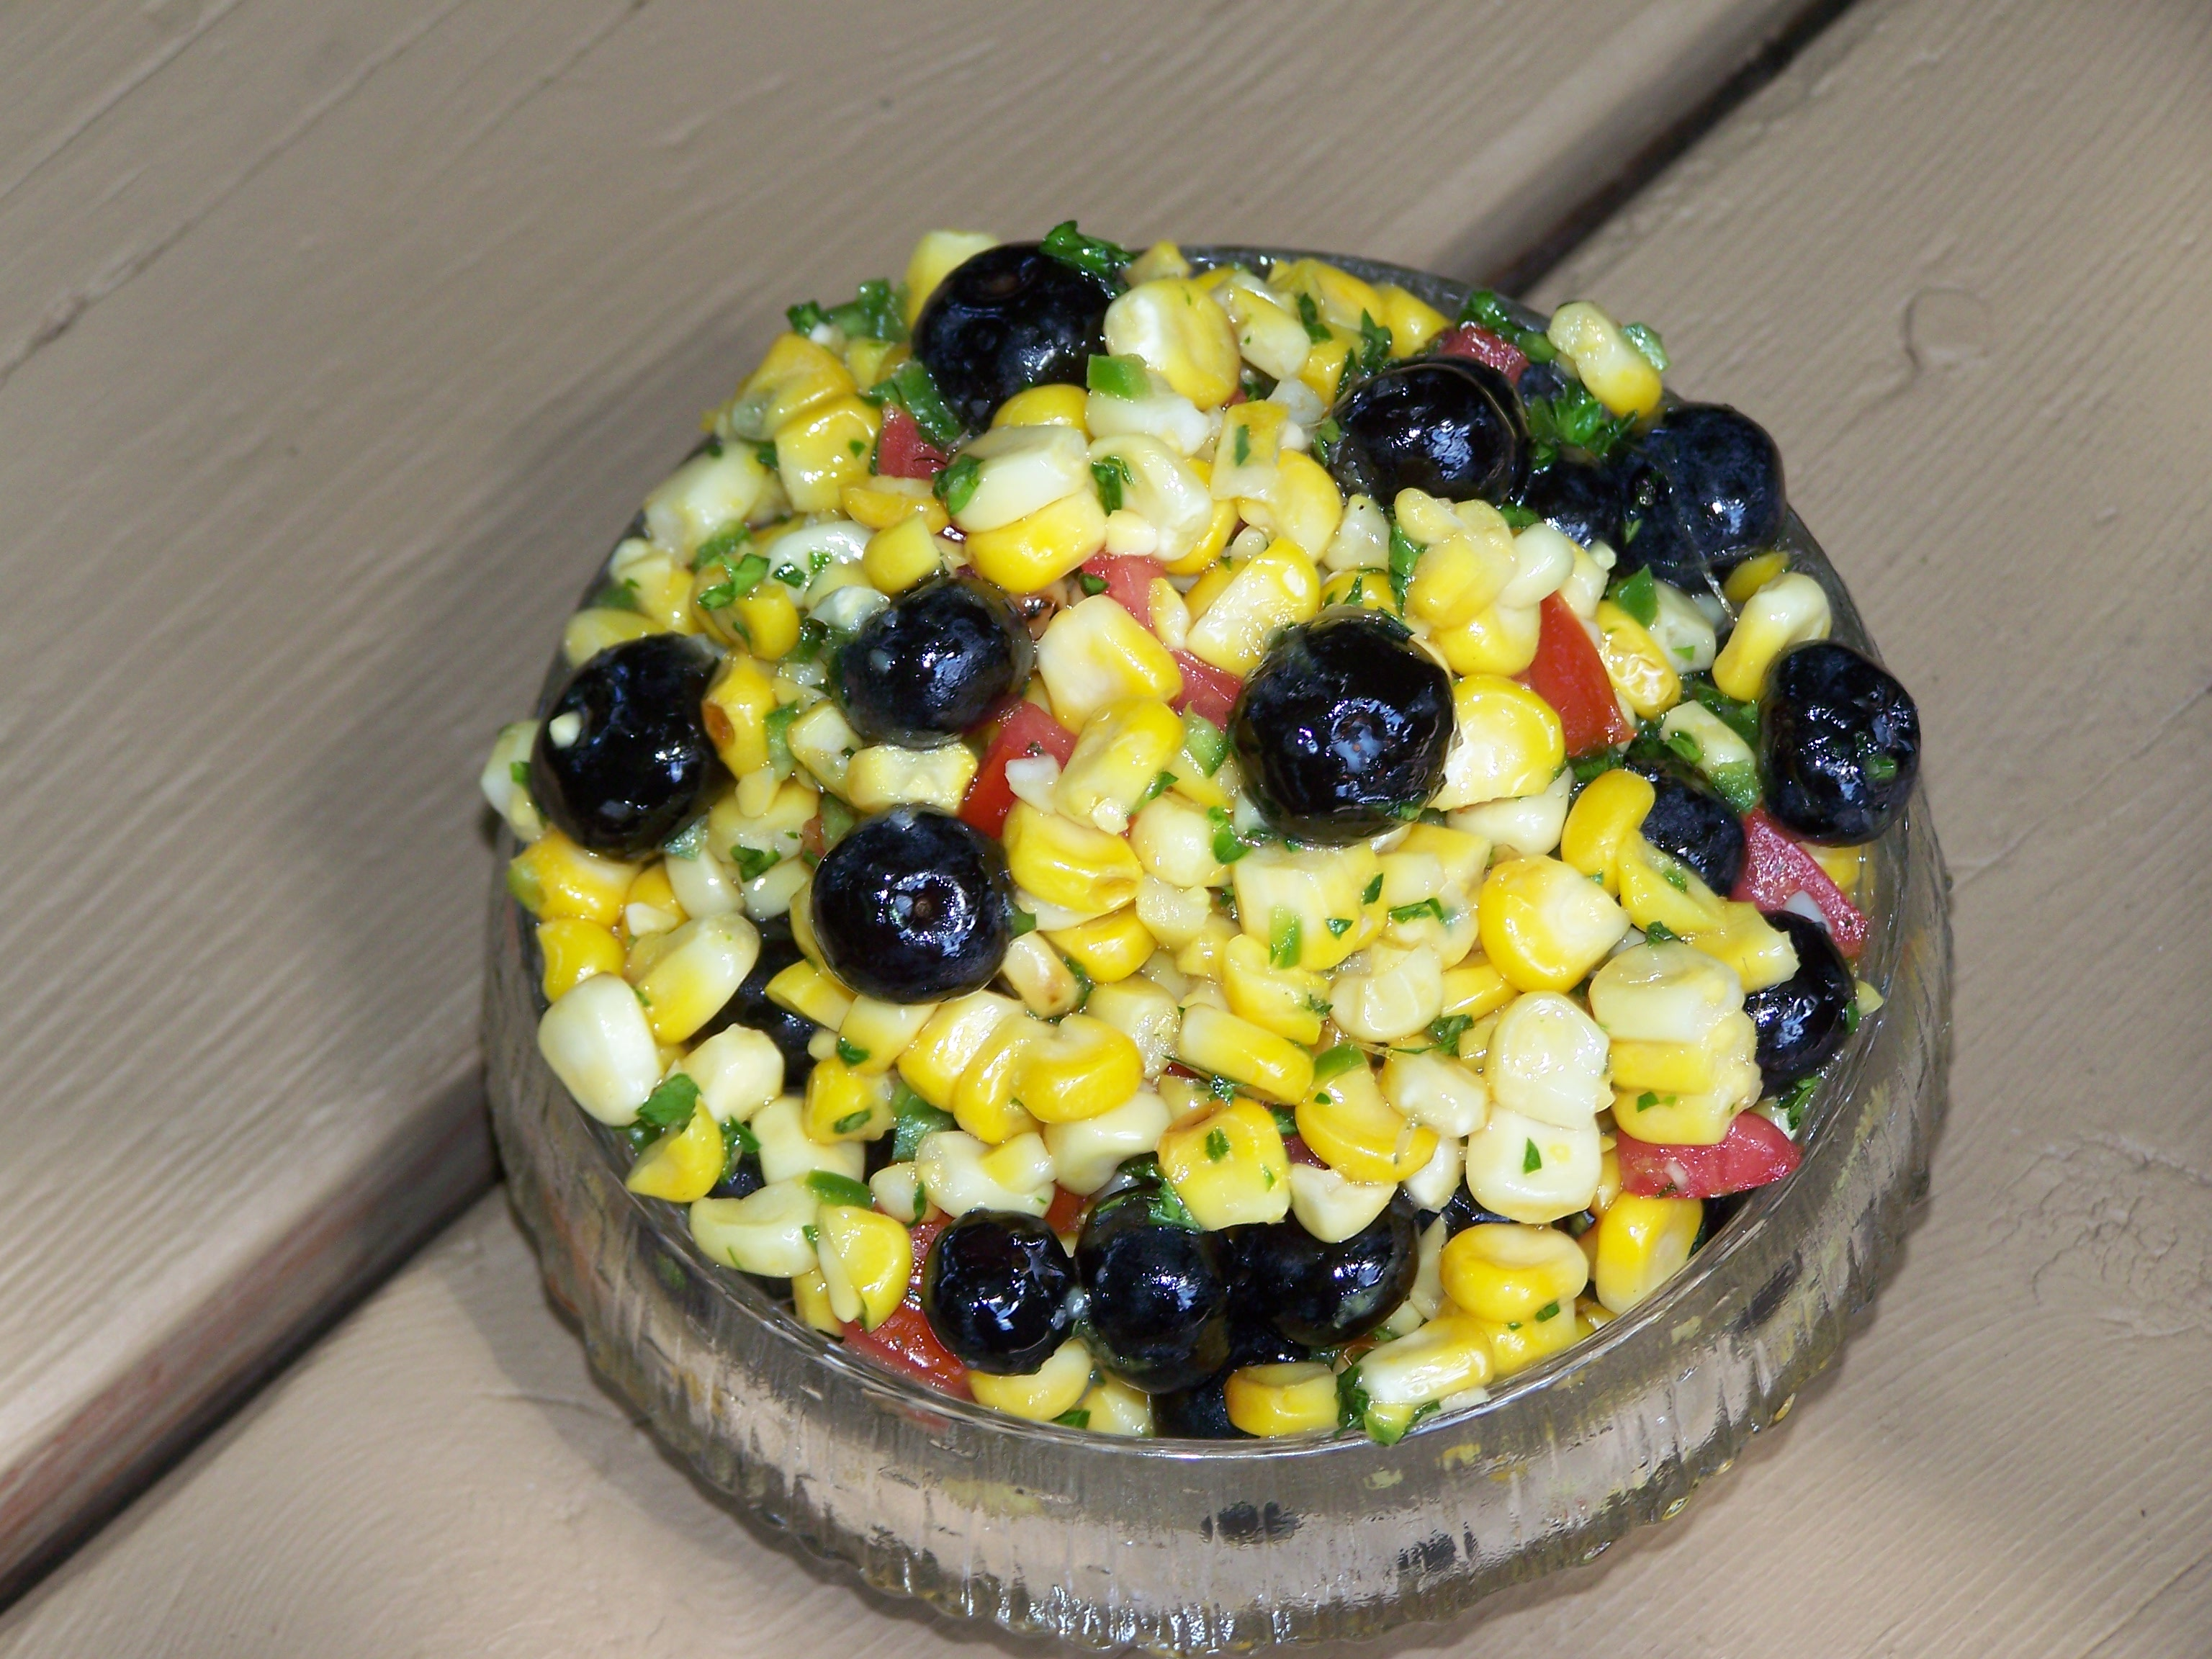 Slightly Charred Spicey Corn with Blueberries Relish